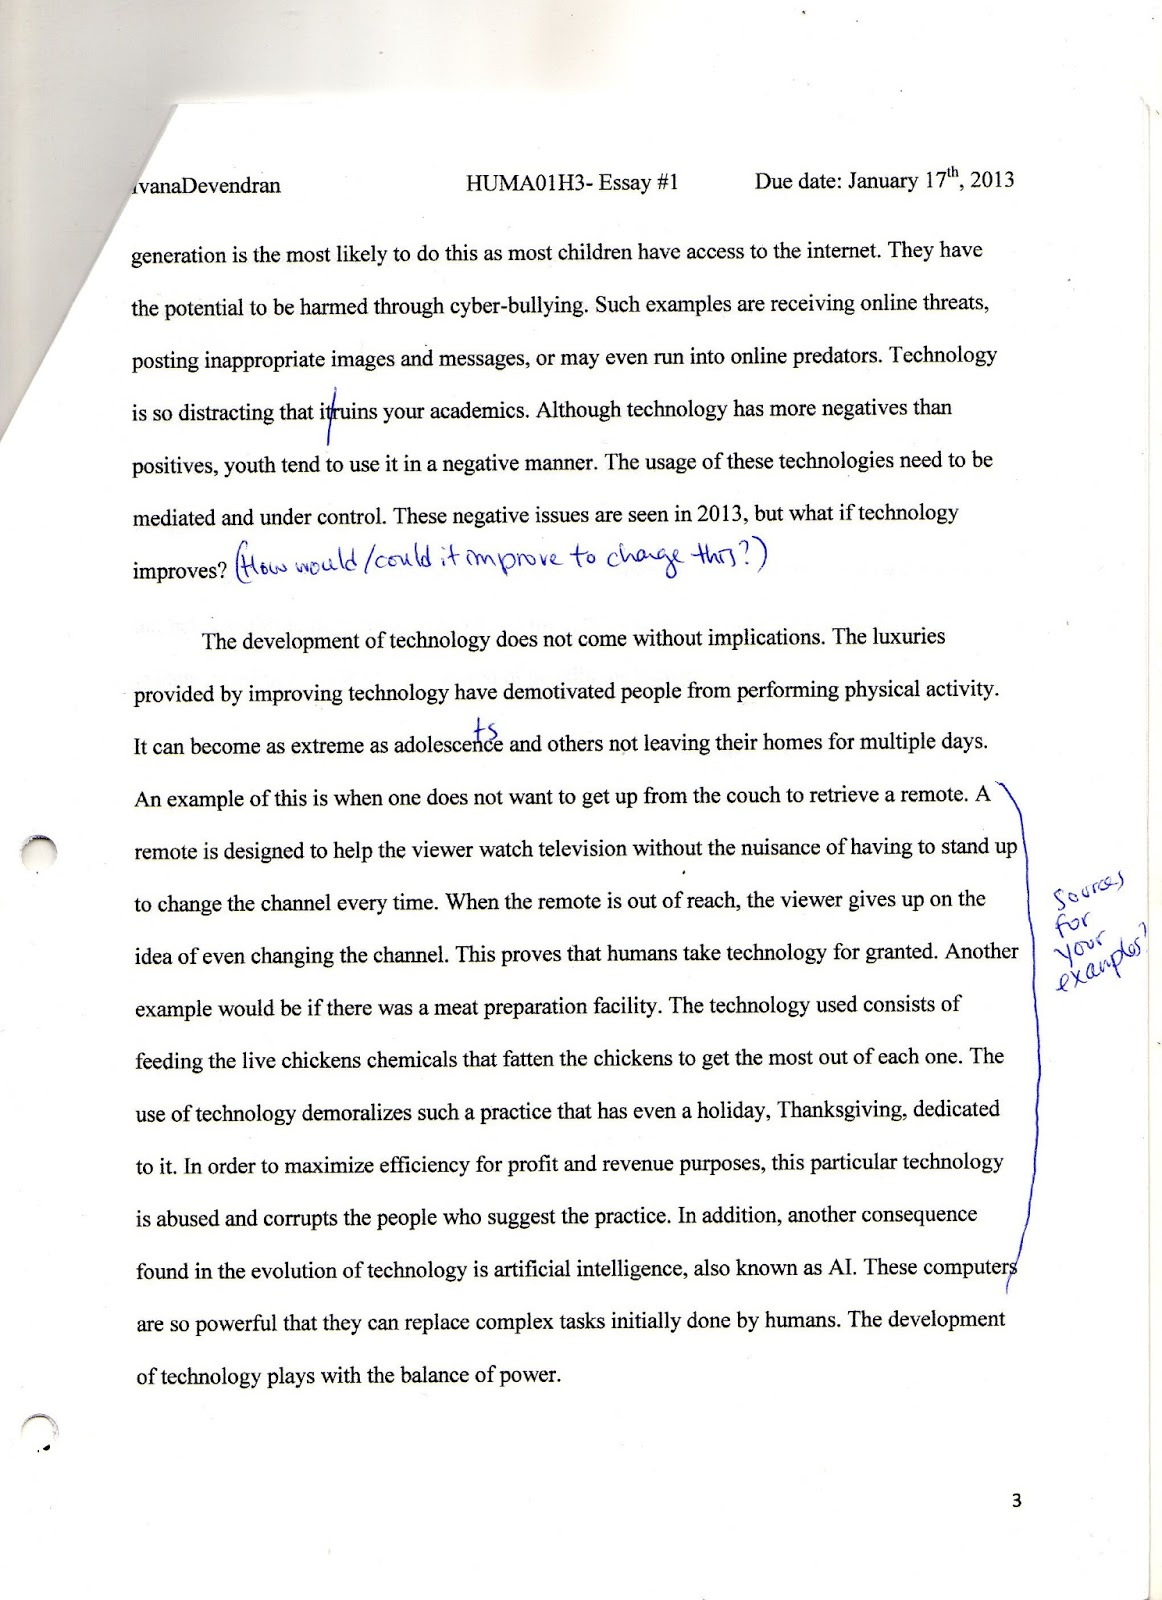 key questions in humanities journal journal entry short essay  feedback as this was my first formal essay for the class i wasn t sure of how my paper would get graded when learning to write and adding elements of